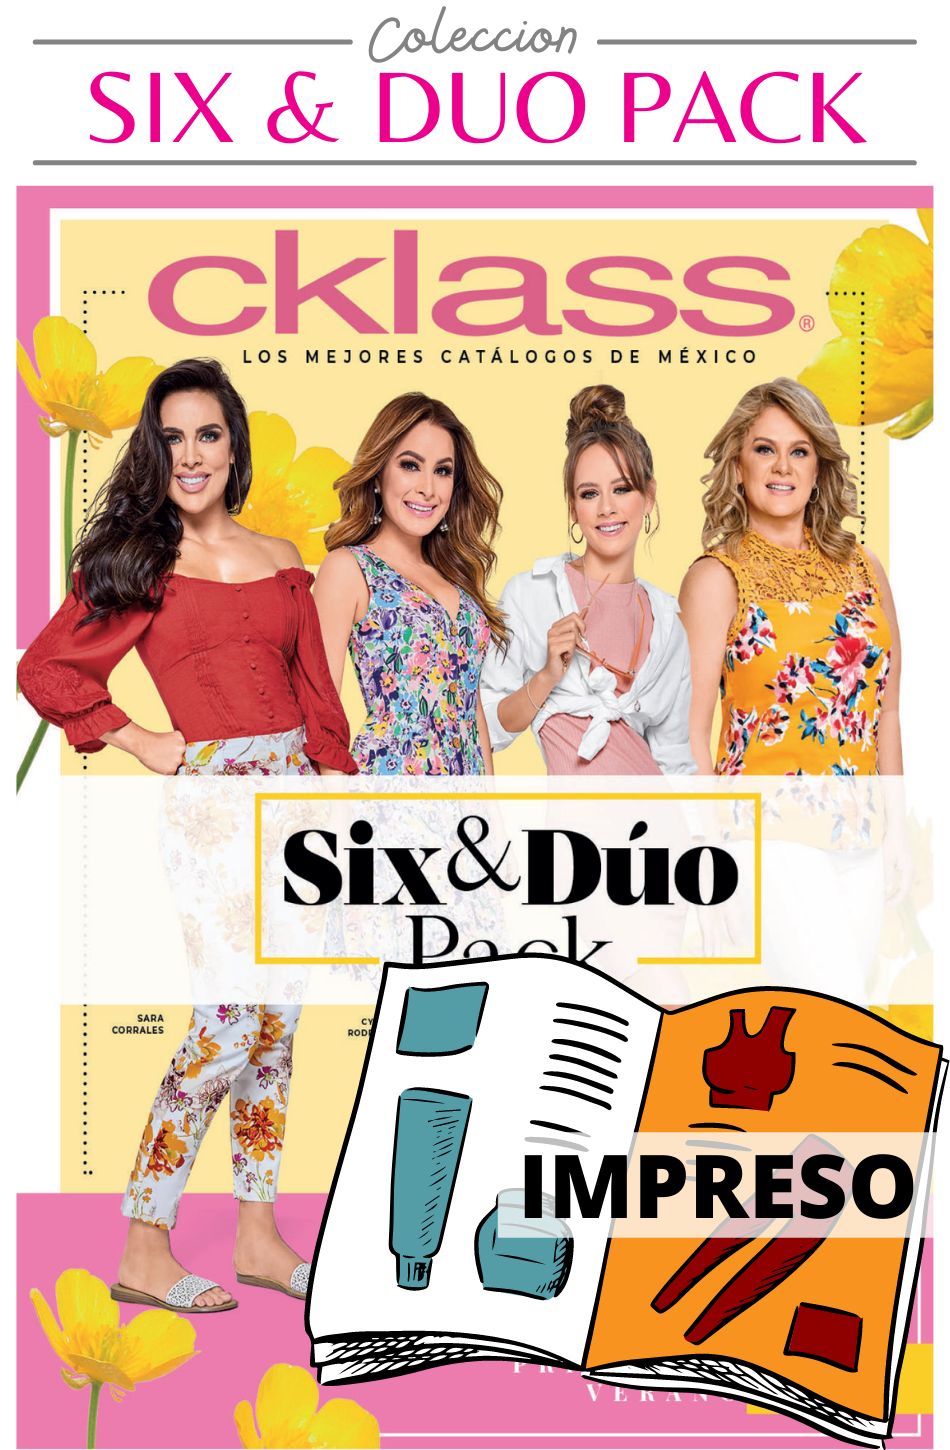 Catalogo Six & Duo Pack Cklass Impreso